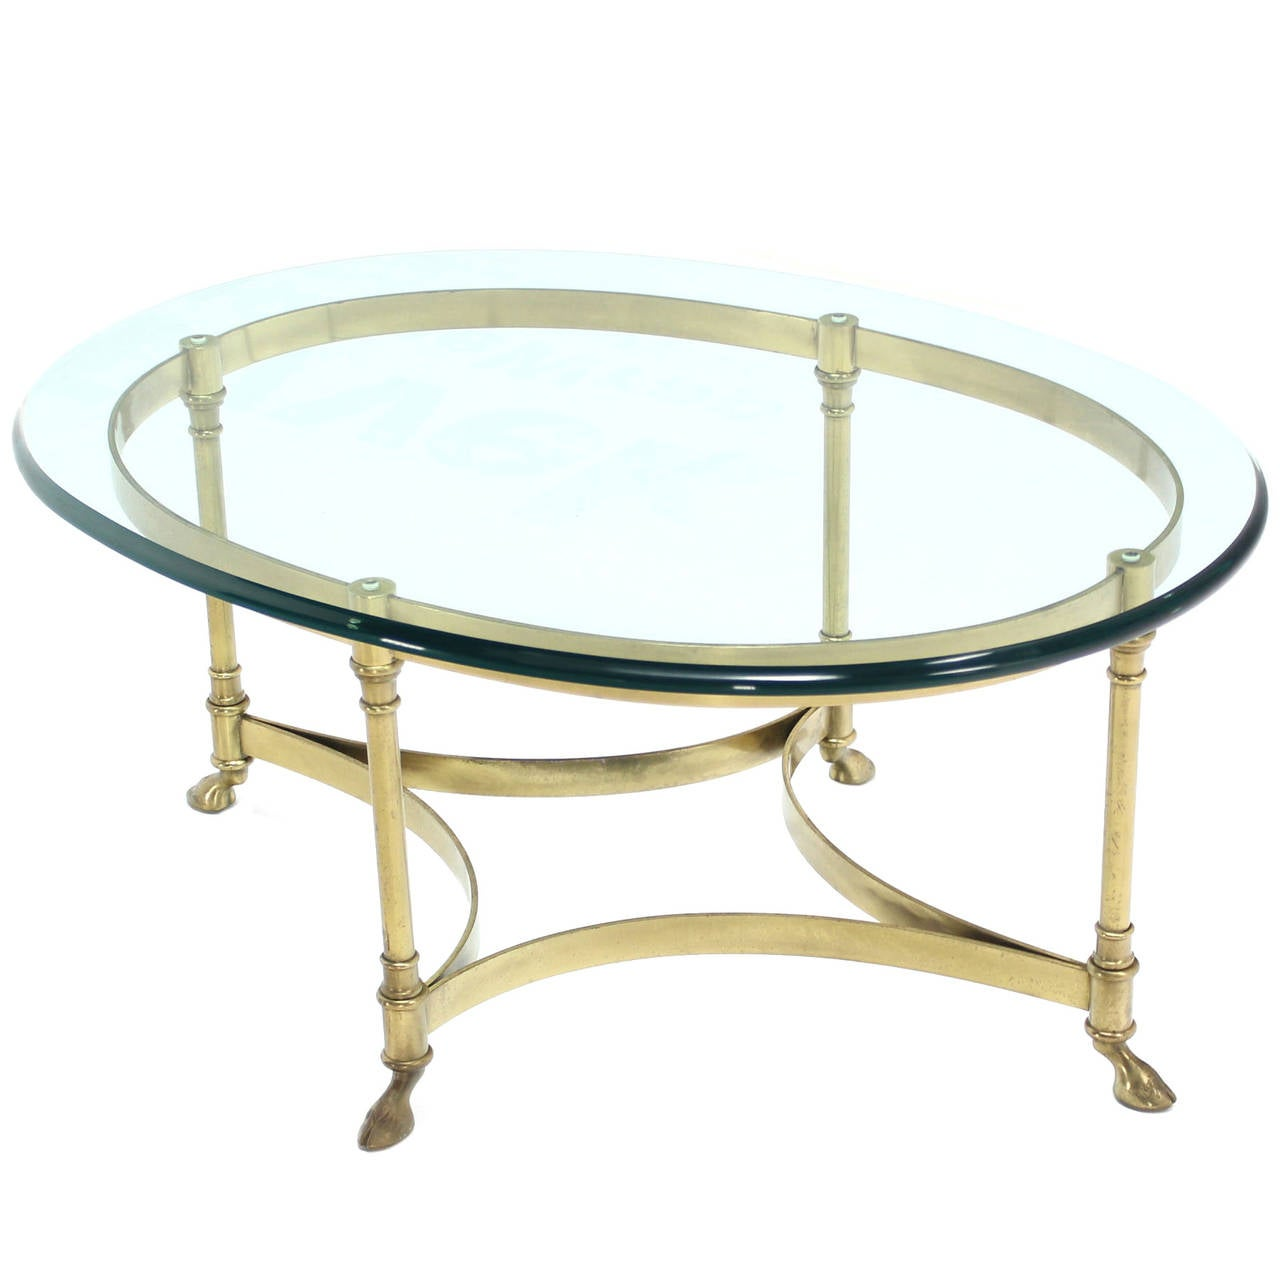 Brass and glass oval hoof feet coffee table Glass oval coffee tables